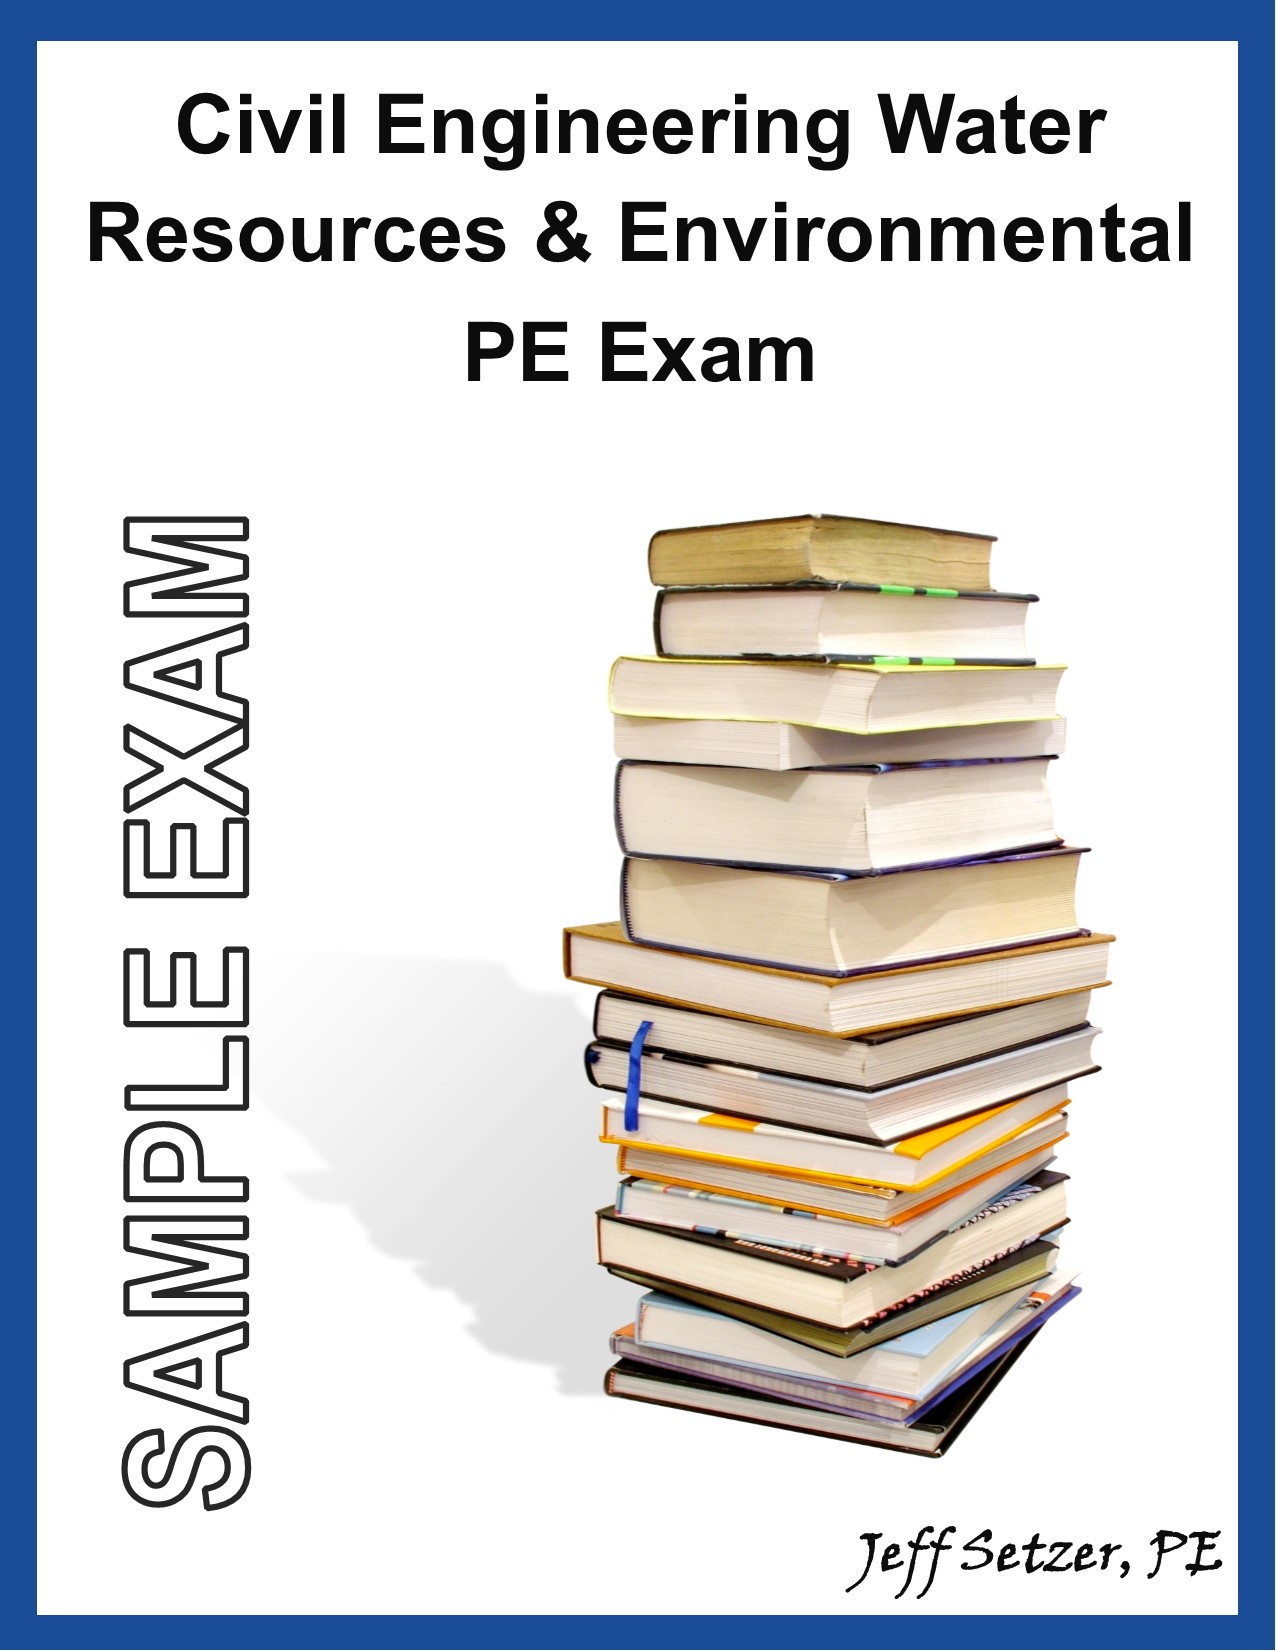 Civil Engineering Water Resources PE Exam Sample Questions ...